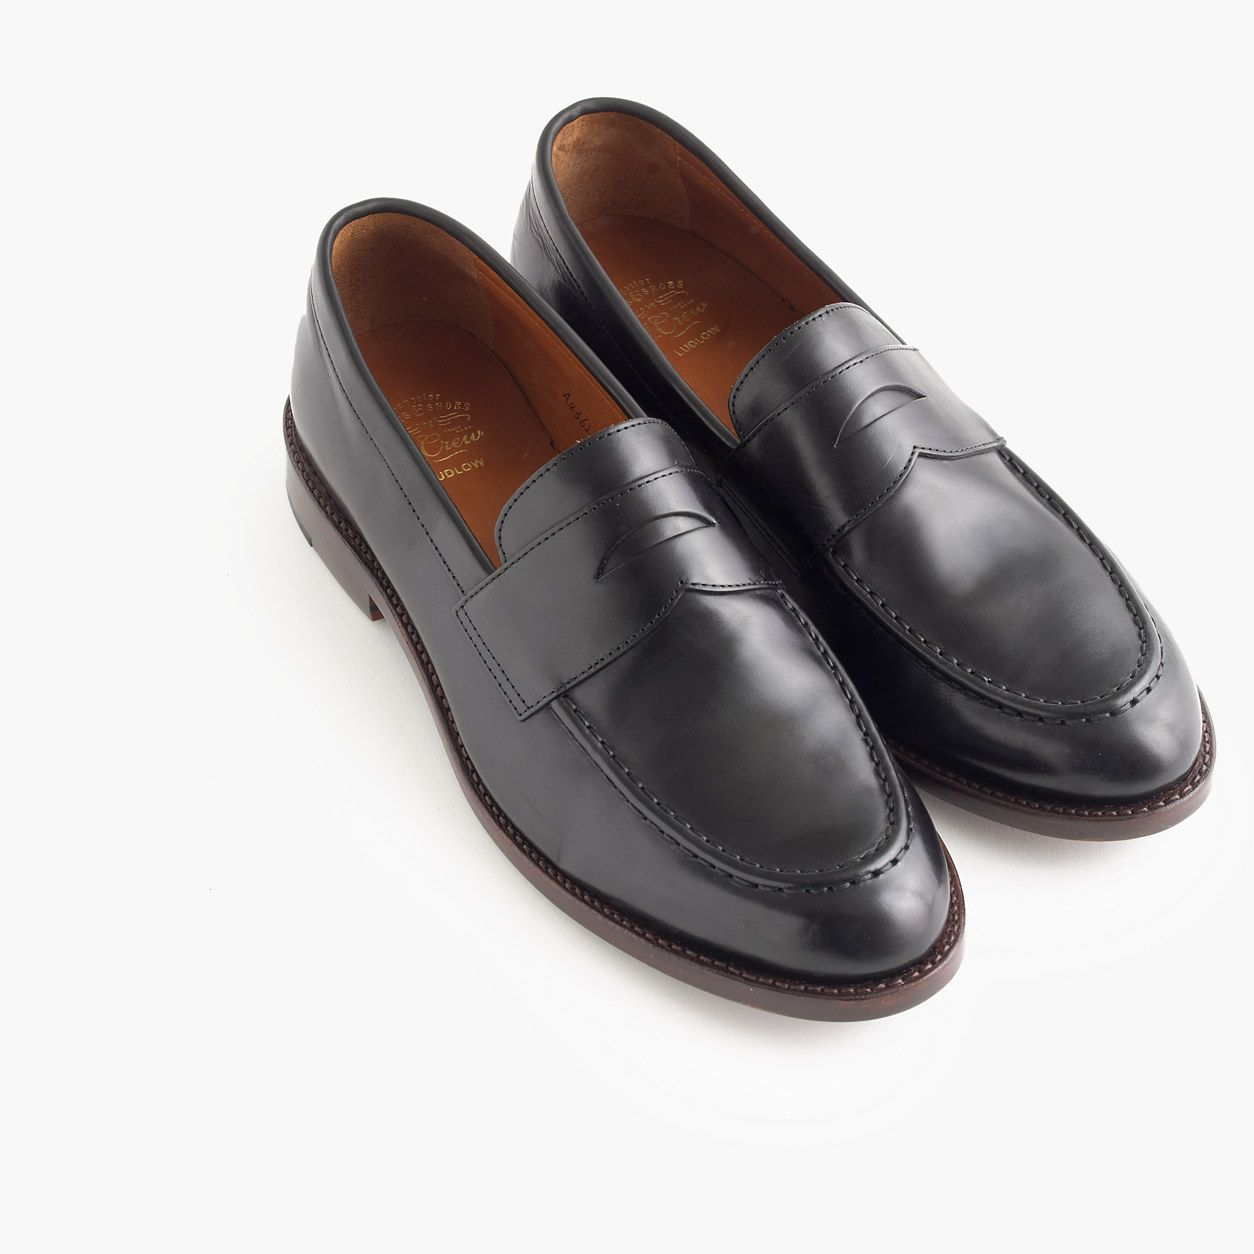 Ludlow penny loafers : dress shoes | J.Crew